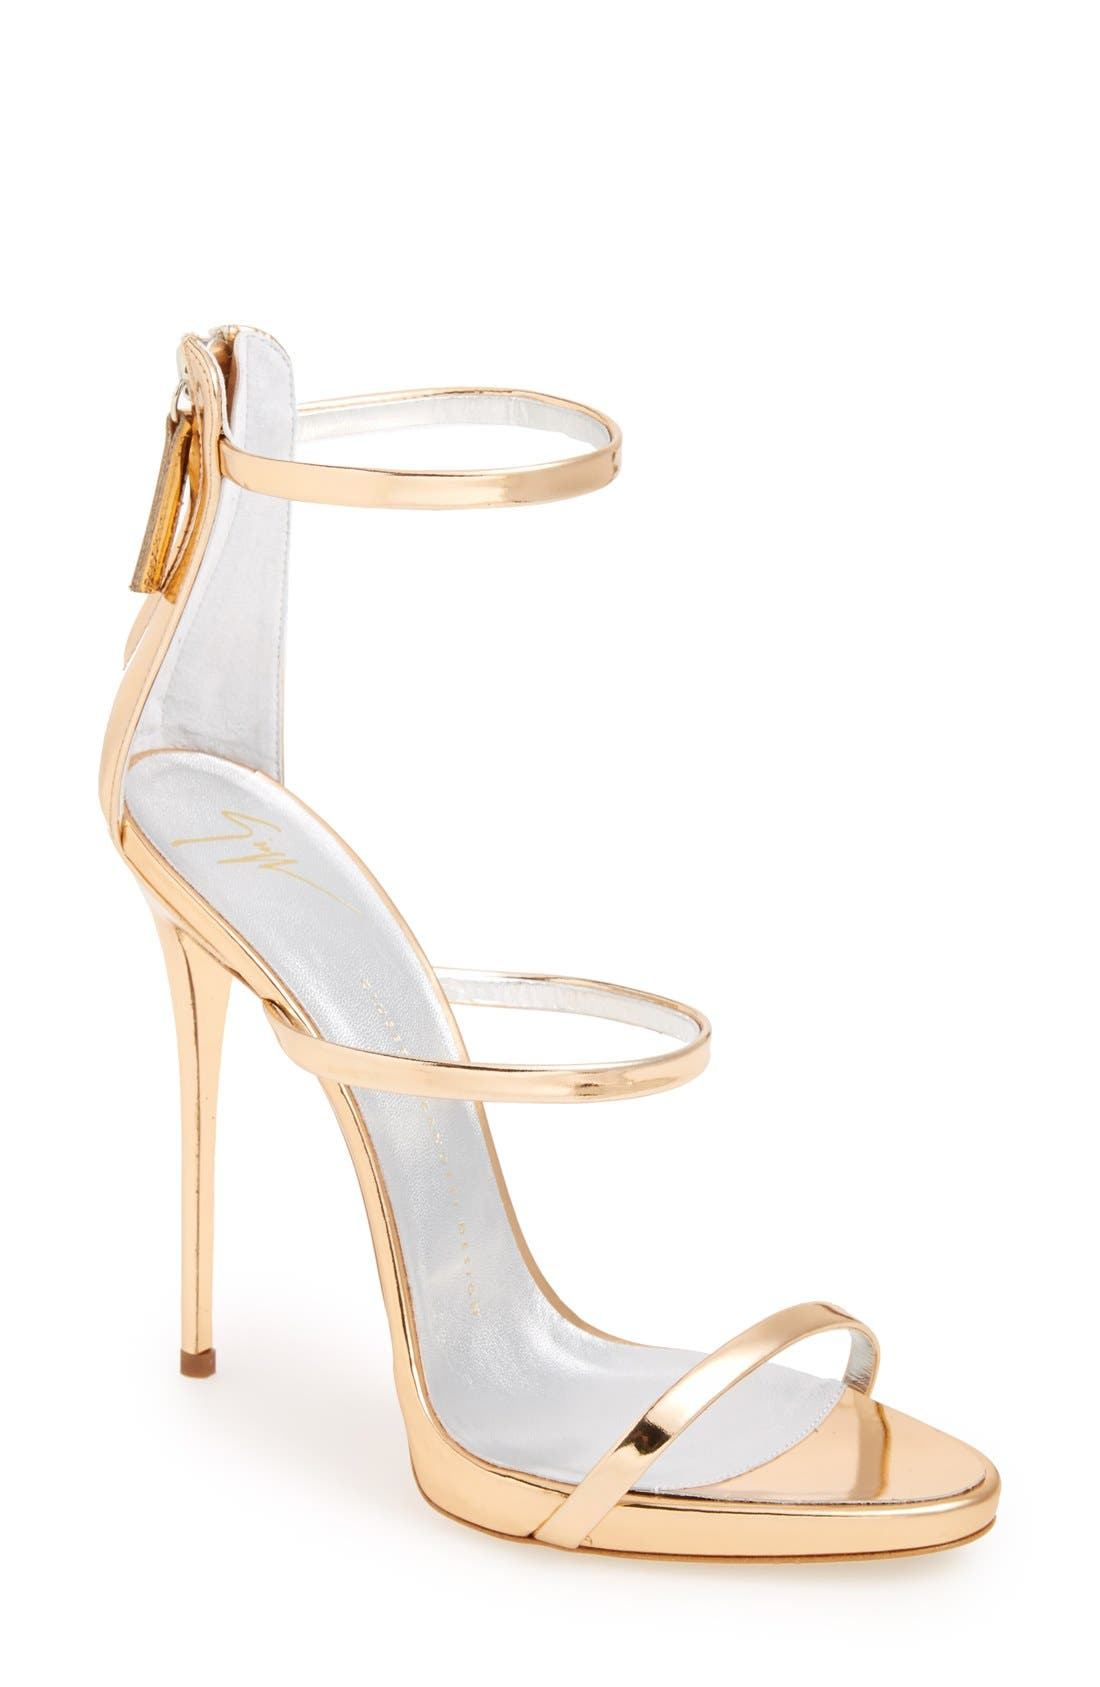 Alternate Image 1 Selected - Giuseppe Zanotti 'Coline' Sandal (Women)